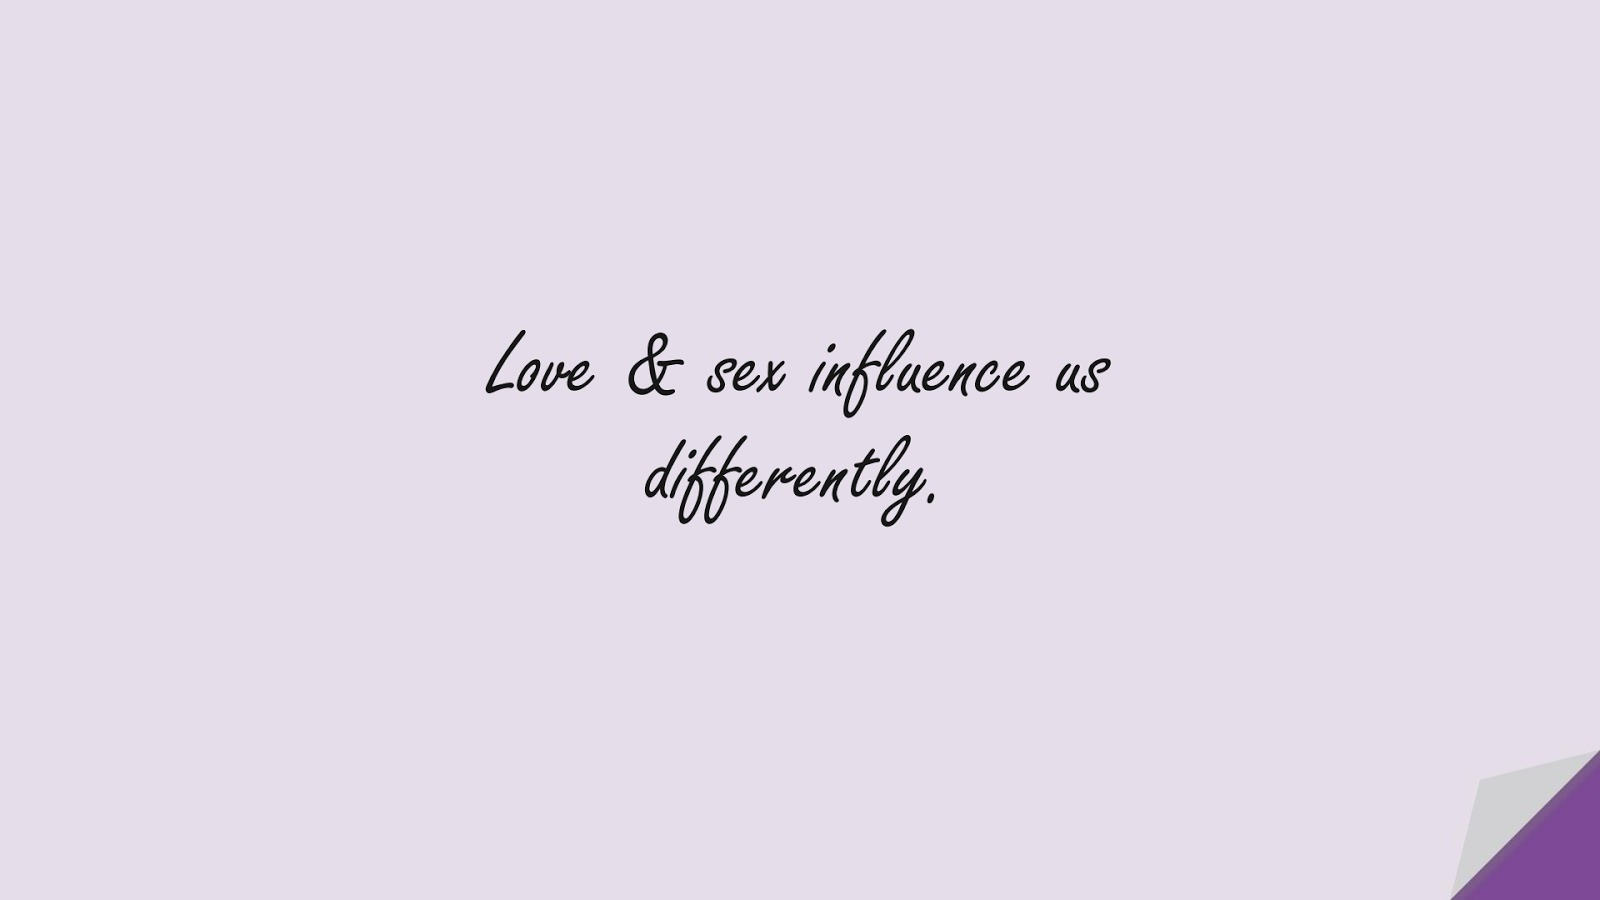 Love & sex influence us differently.FALSE